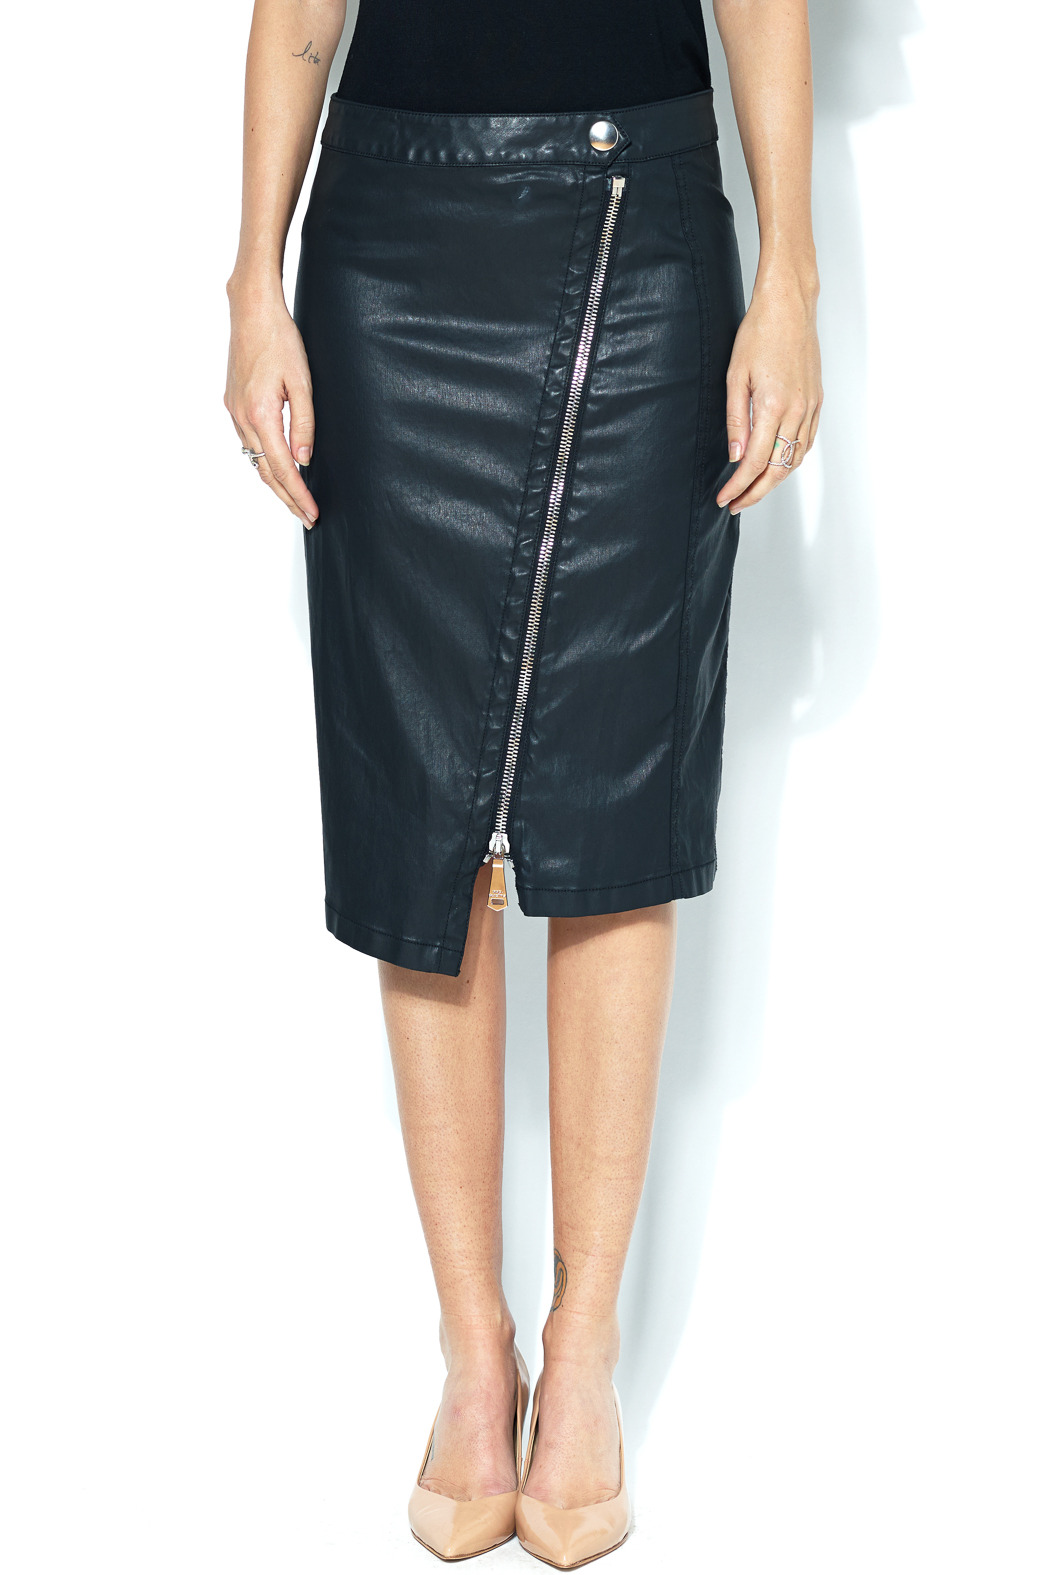 Cop-Copine Leather Zipper Pencil Skirt from SoHo by Foravi ...